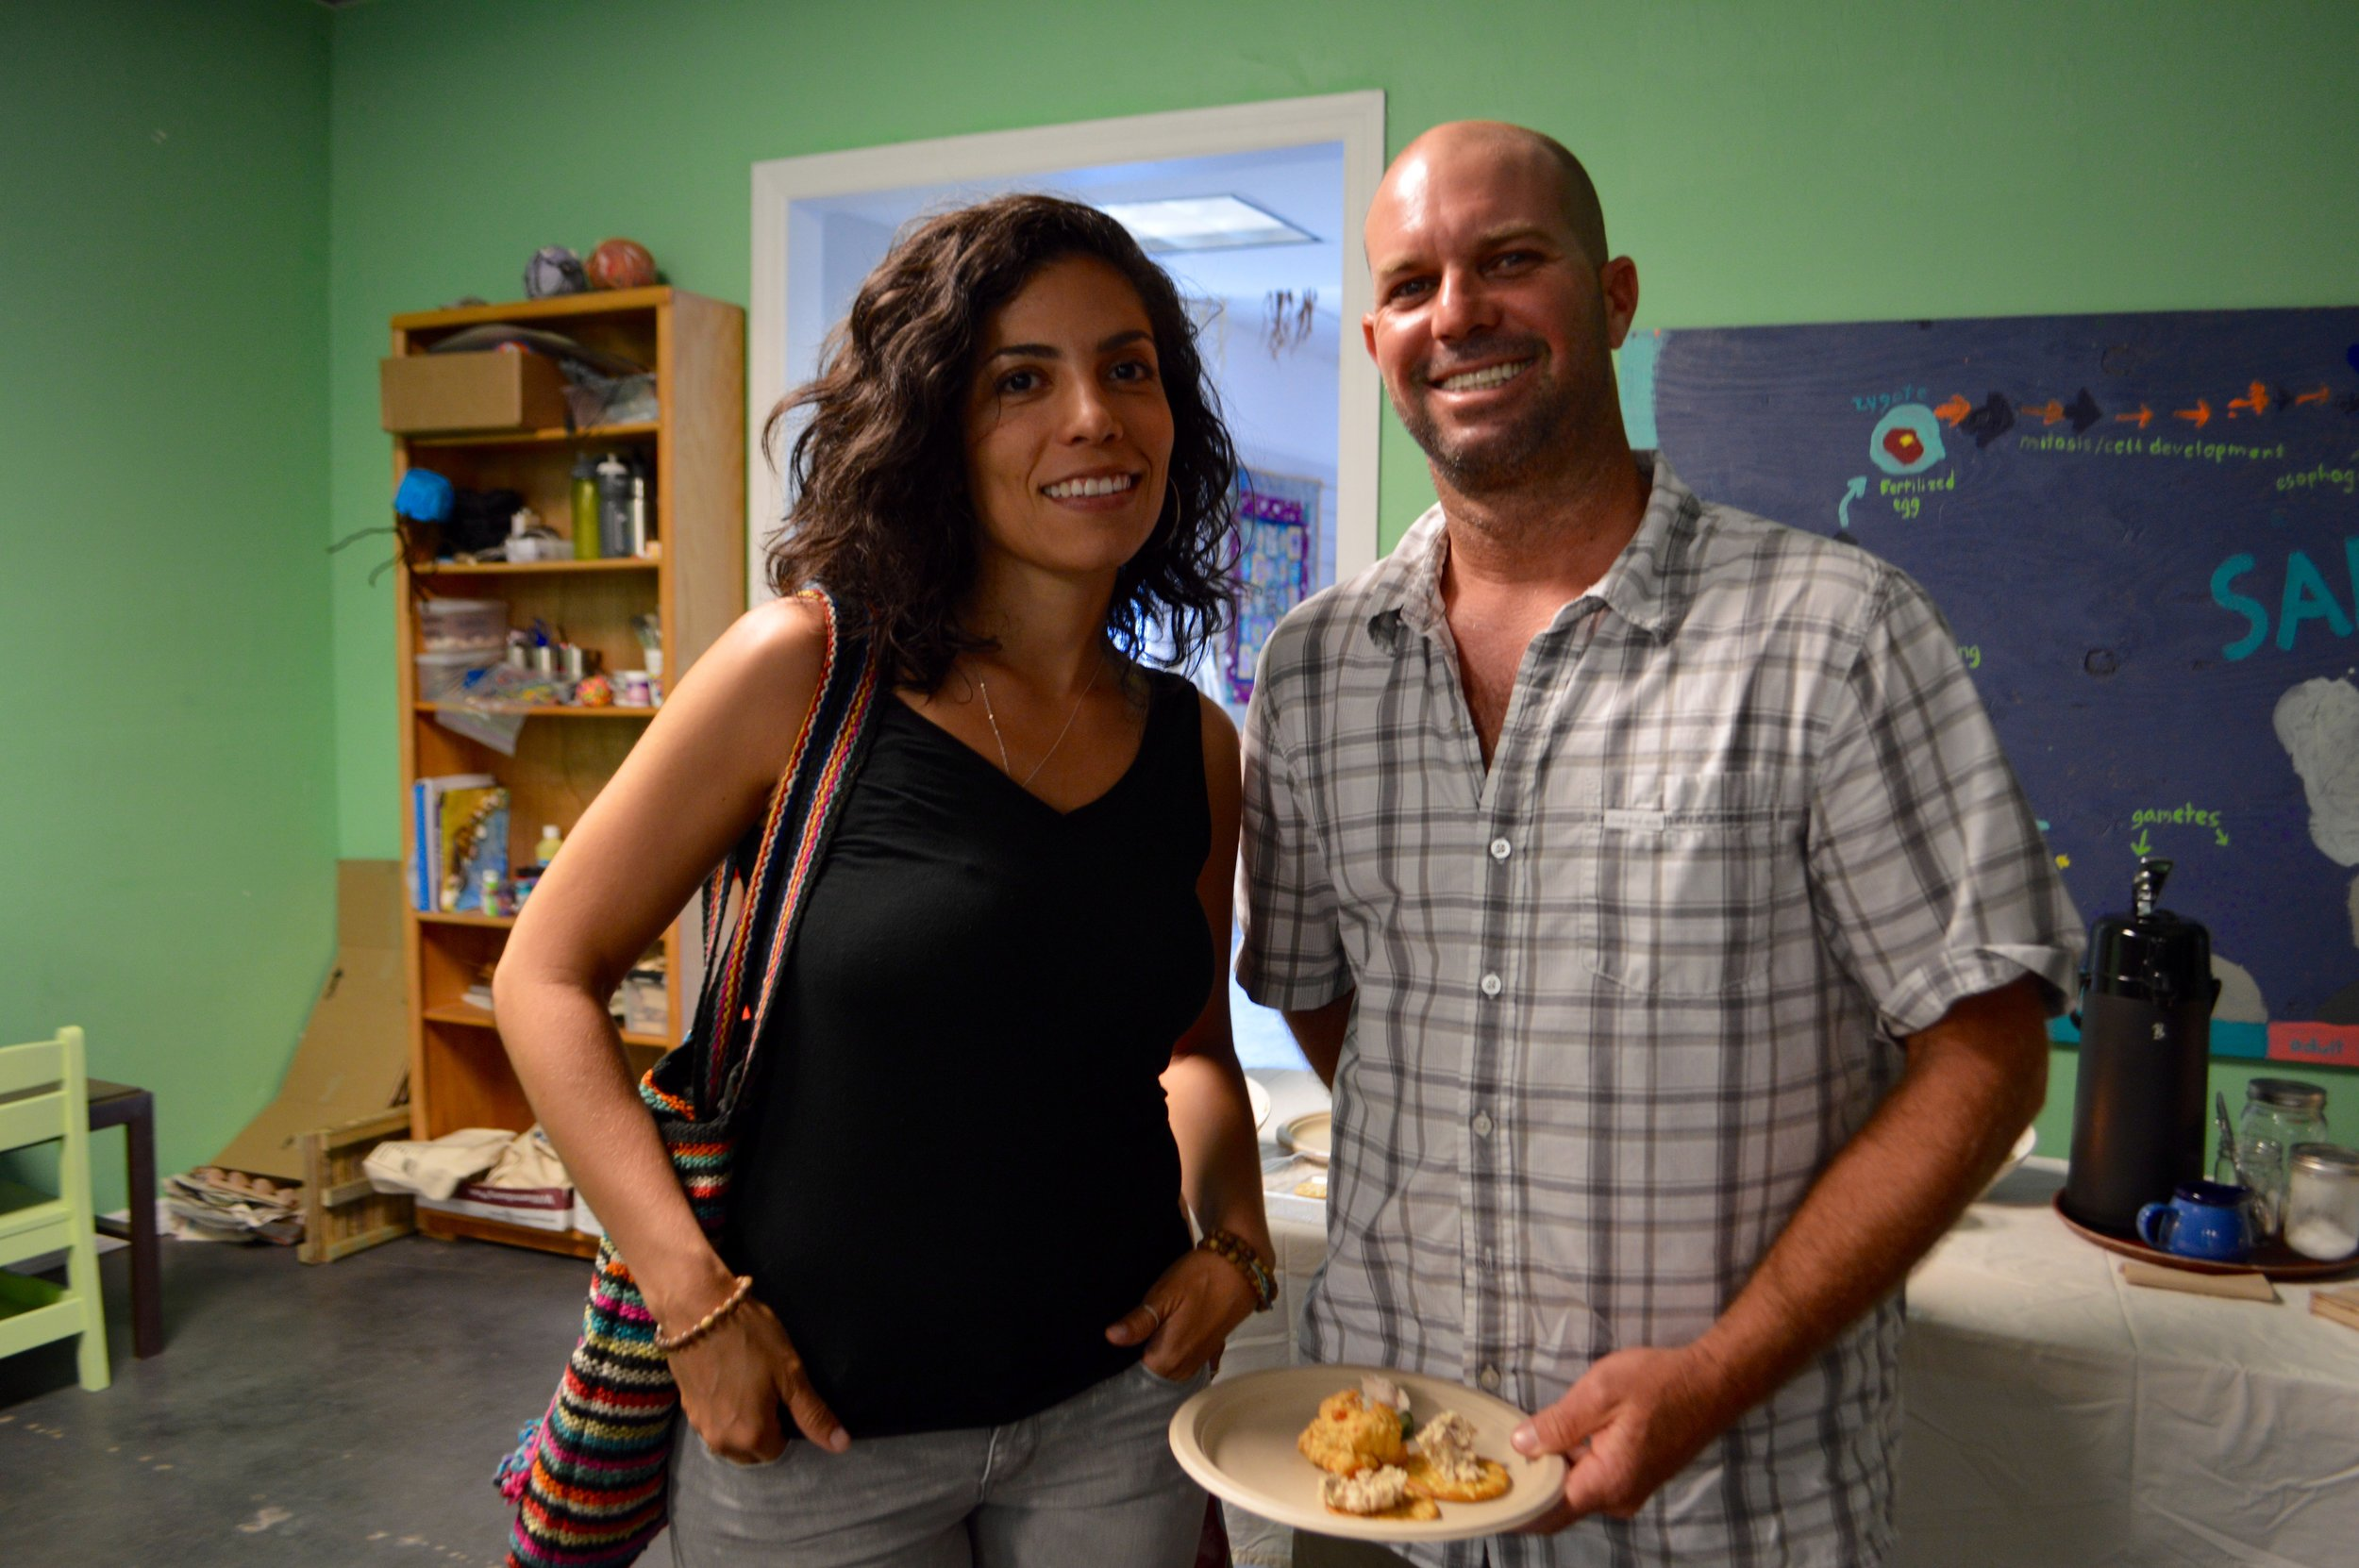 Yali Zawady and John Houston sample the mullet hors d'oeuvres.